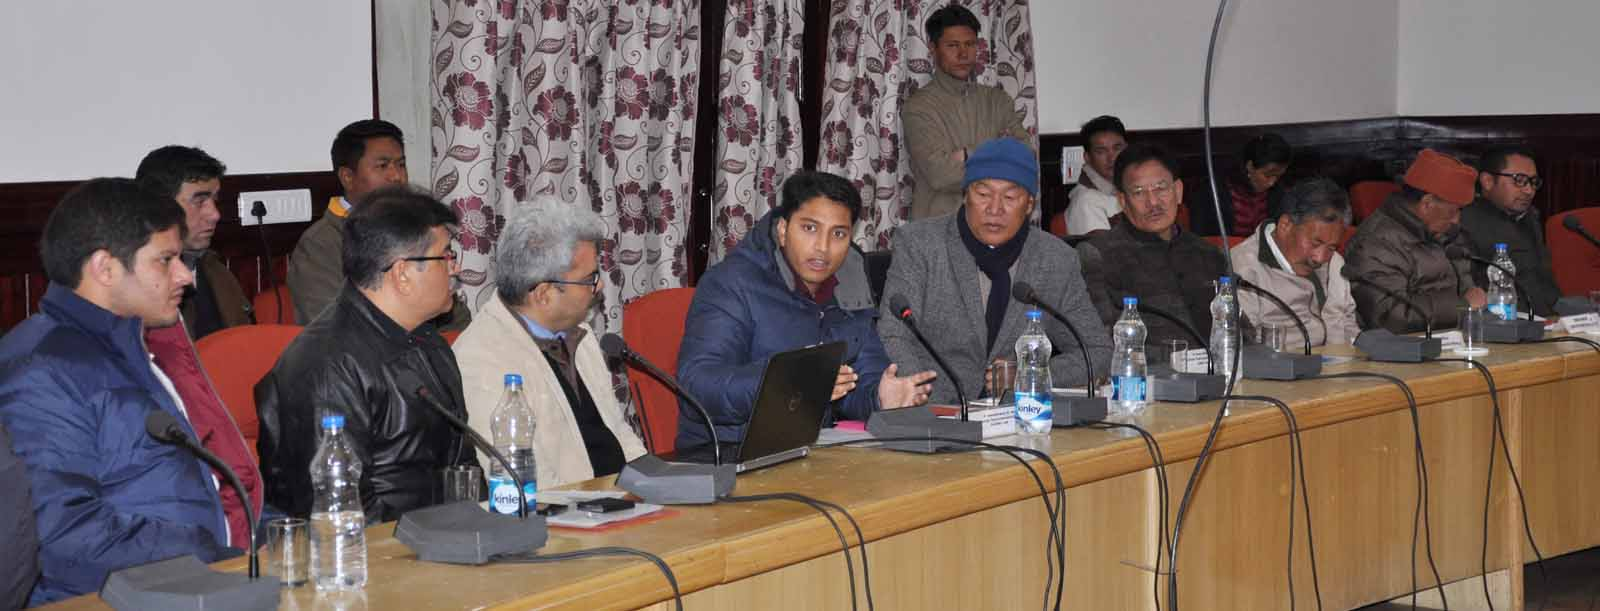 Chering Dorjay for making Leh fully organic certified district